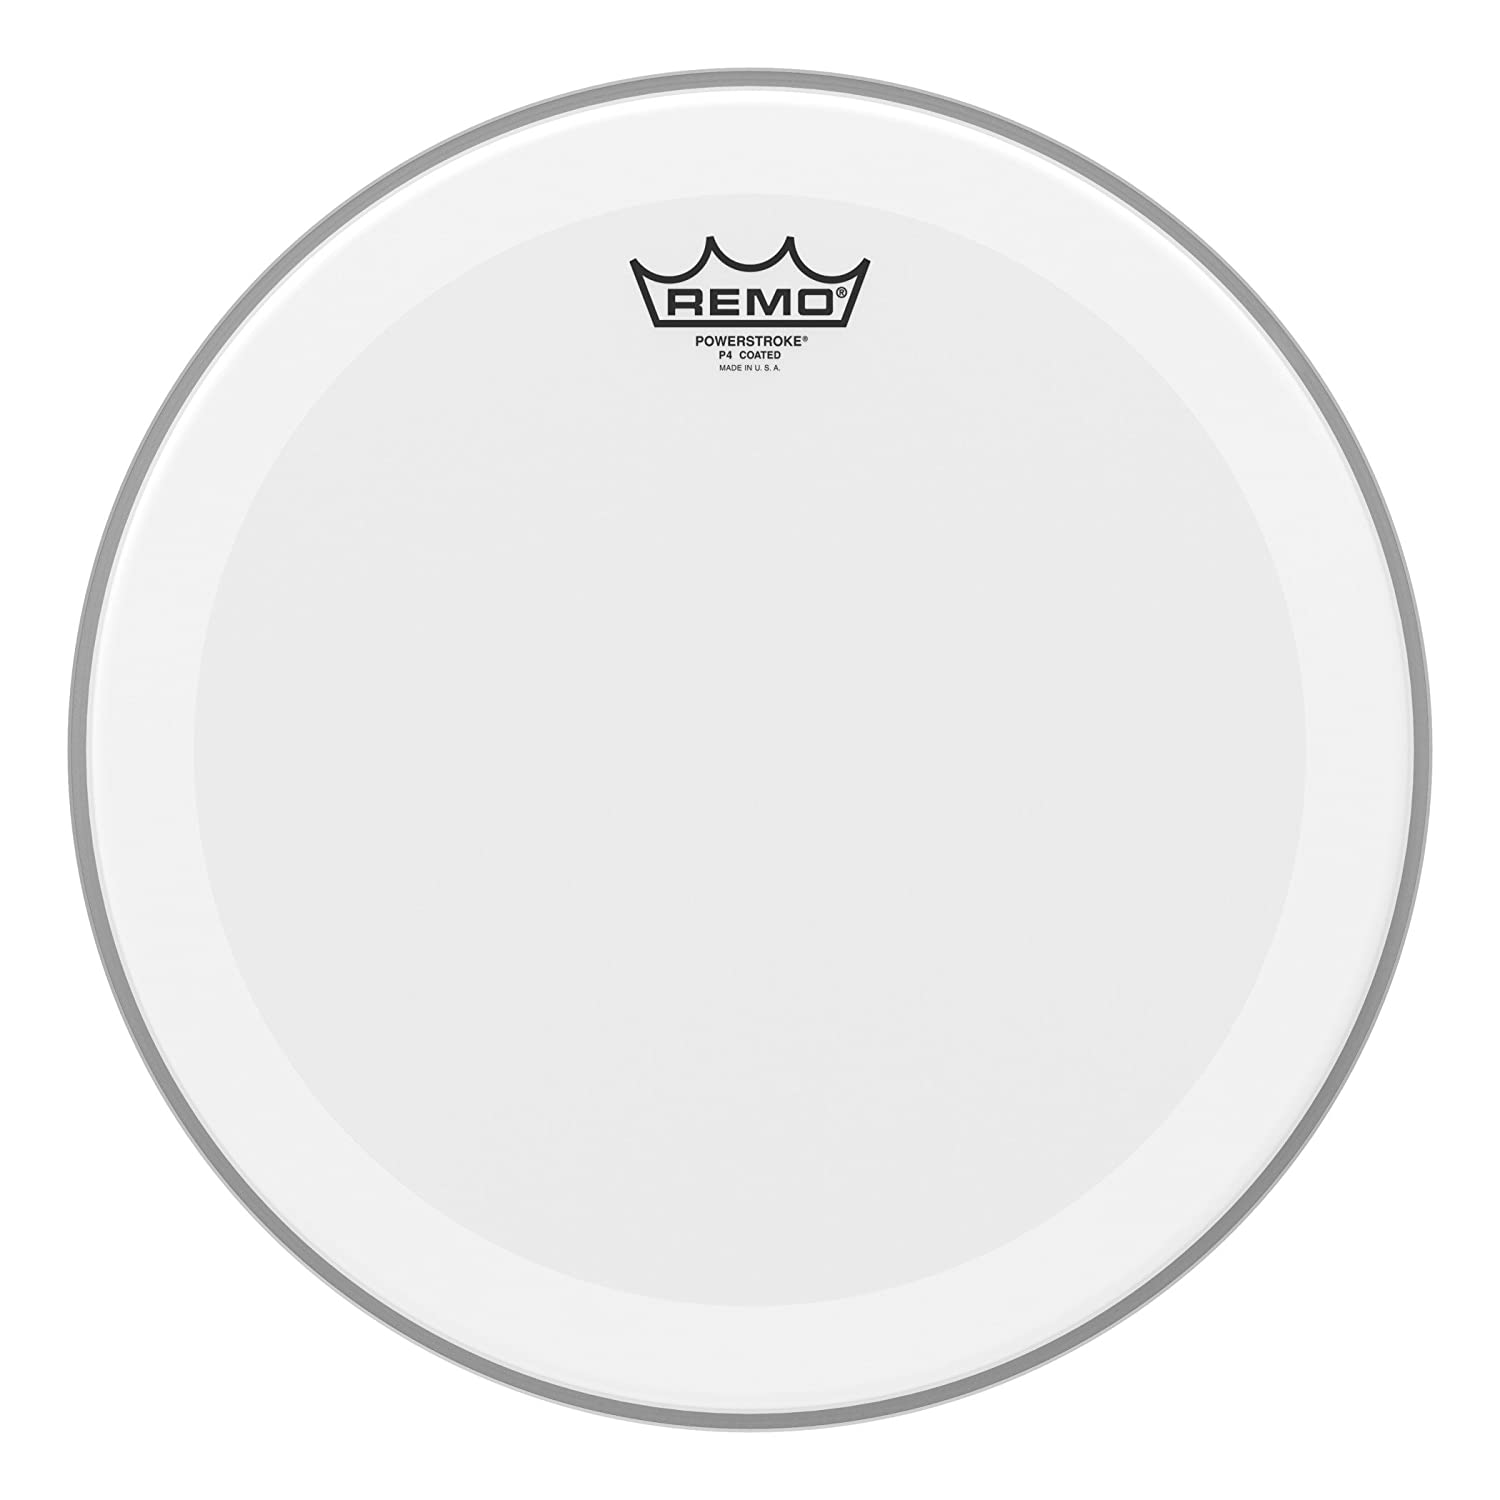 Remo Powerstroke P4 Coated Drumhead, 13